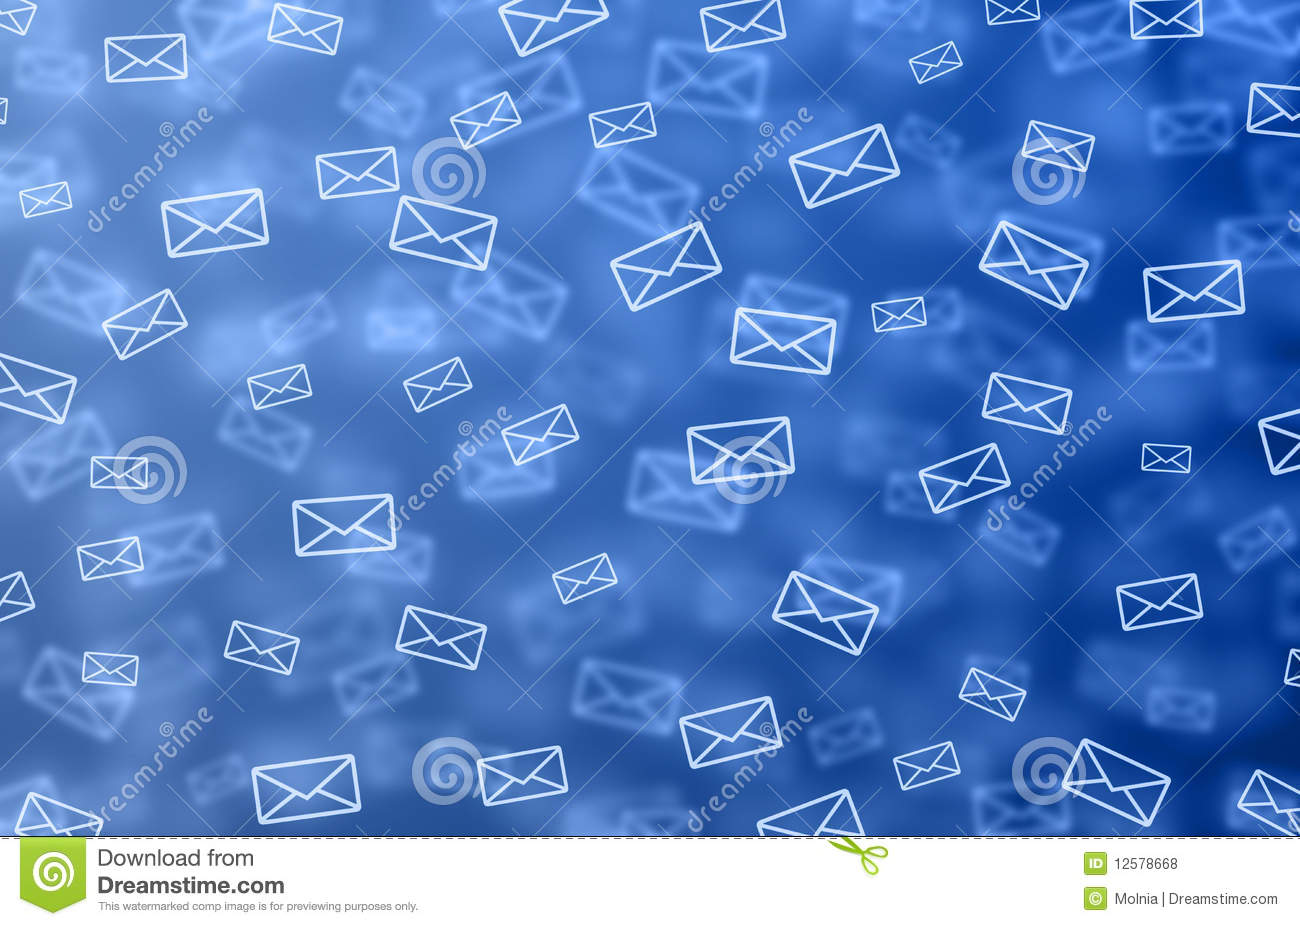 Email Backgrounds – Free wallpaper download